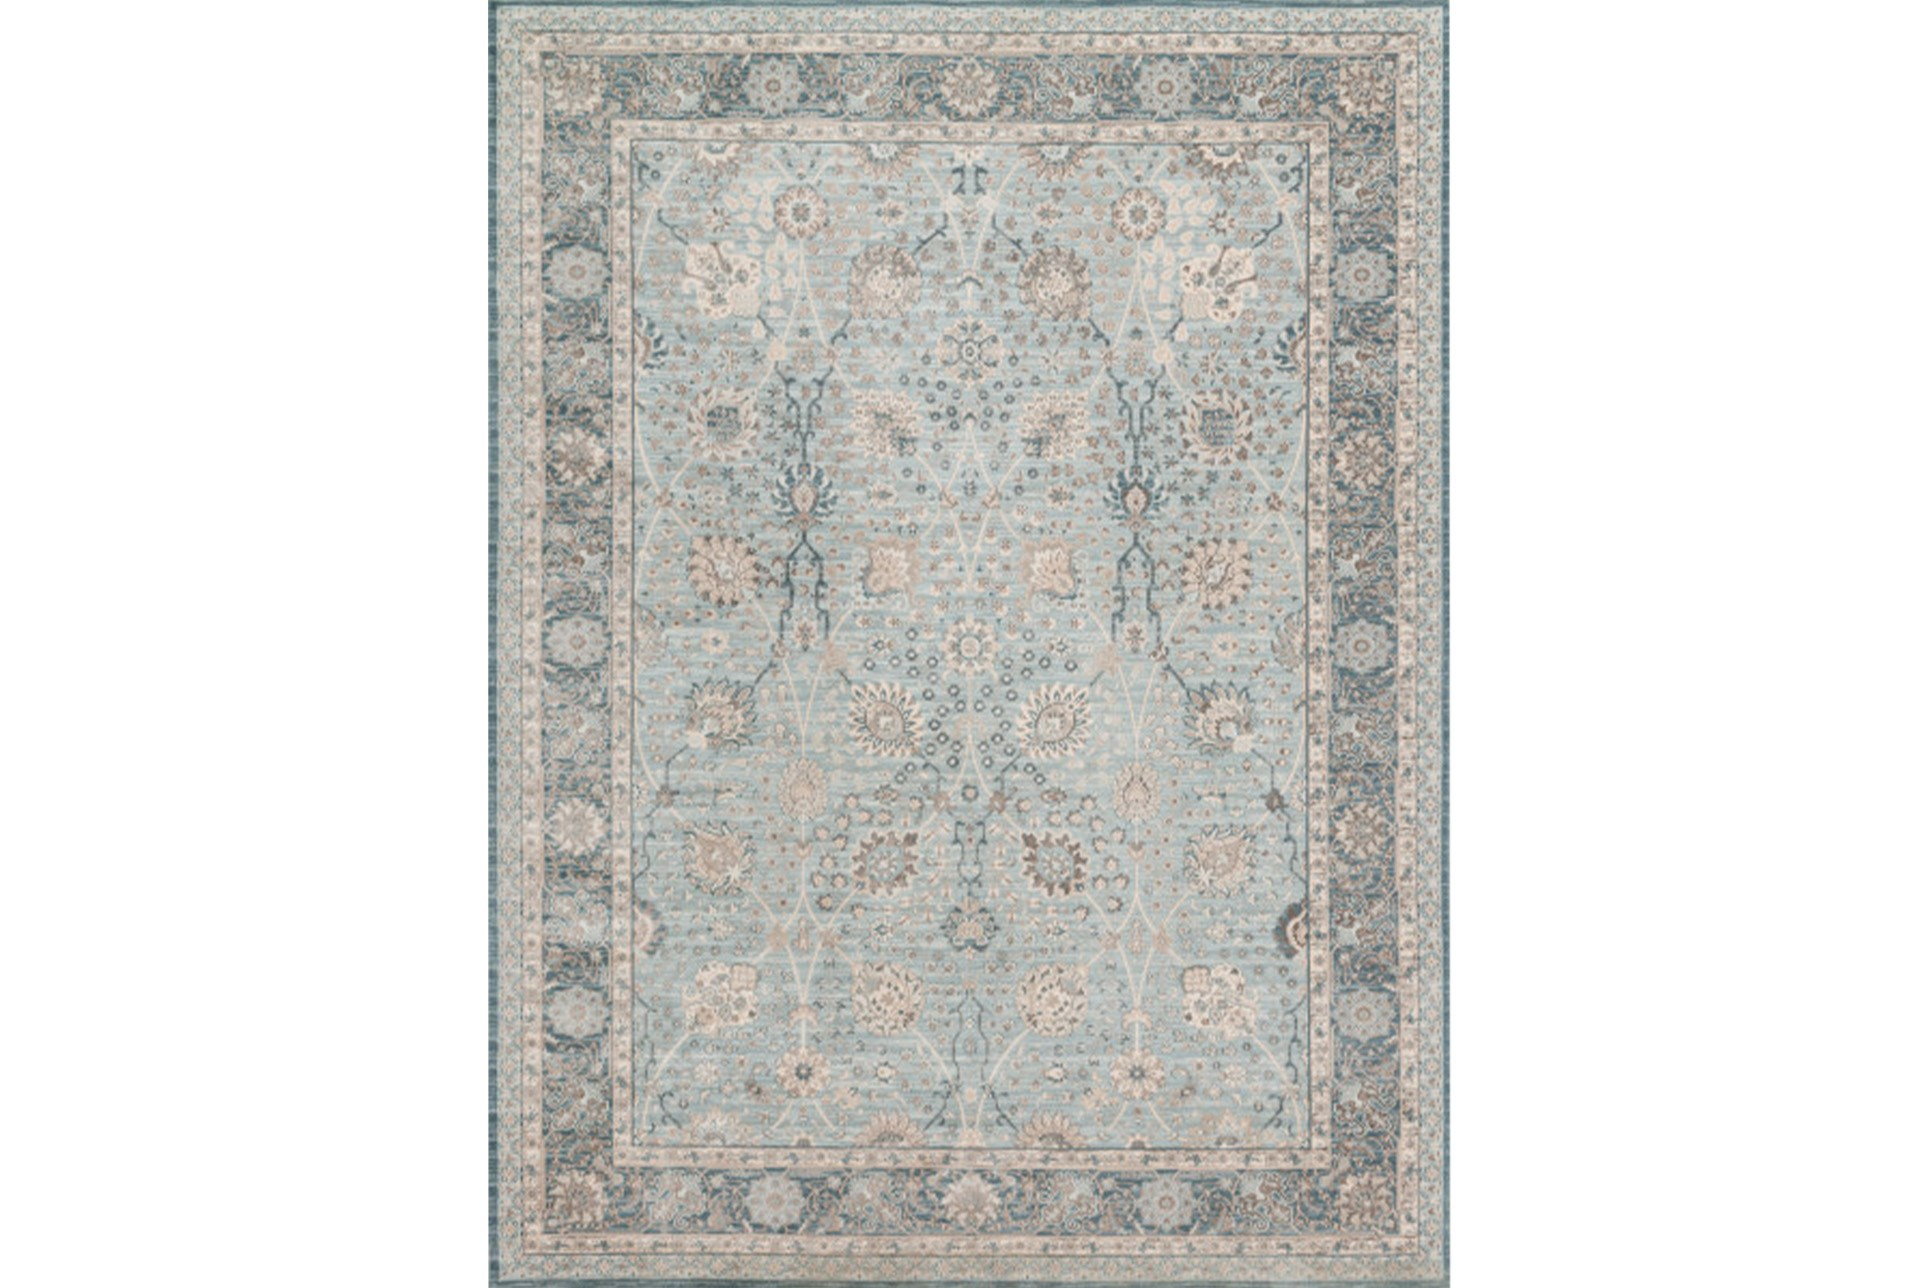 94x126 Rug Magnolia Home Ella Rose Lt Blue Dk Blue By Joanna Gaines